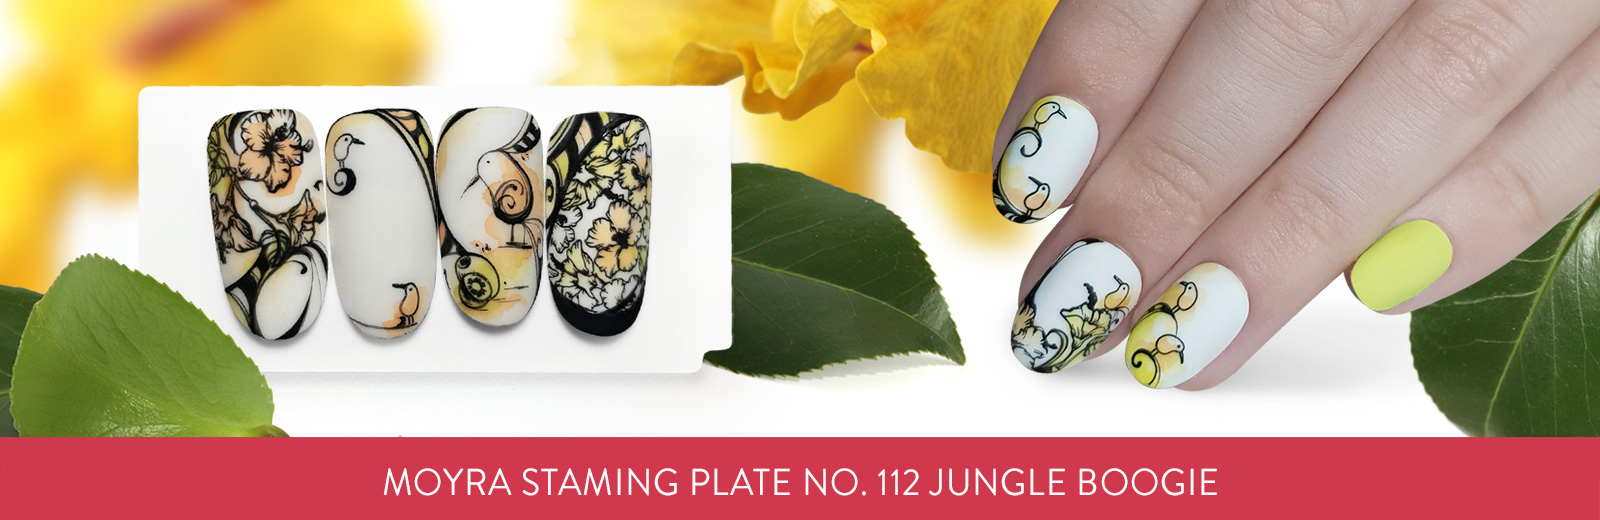 Moyra stamping plate 112 Jungle boogie